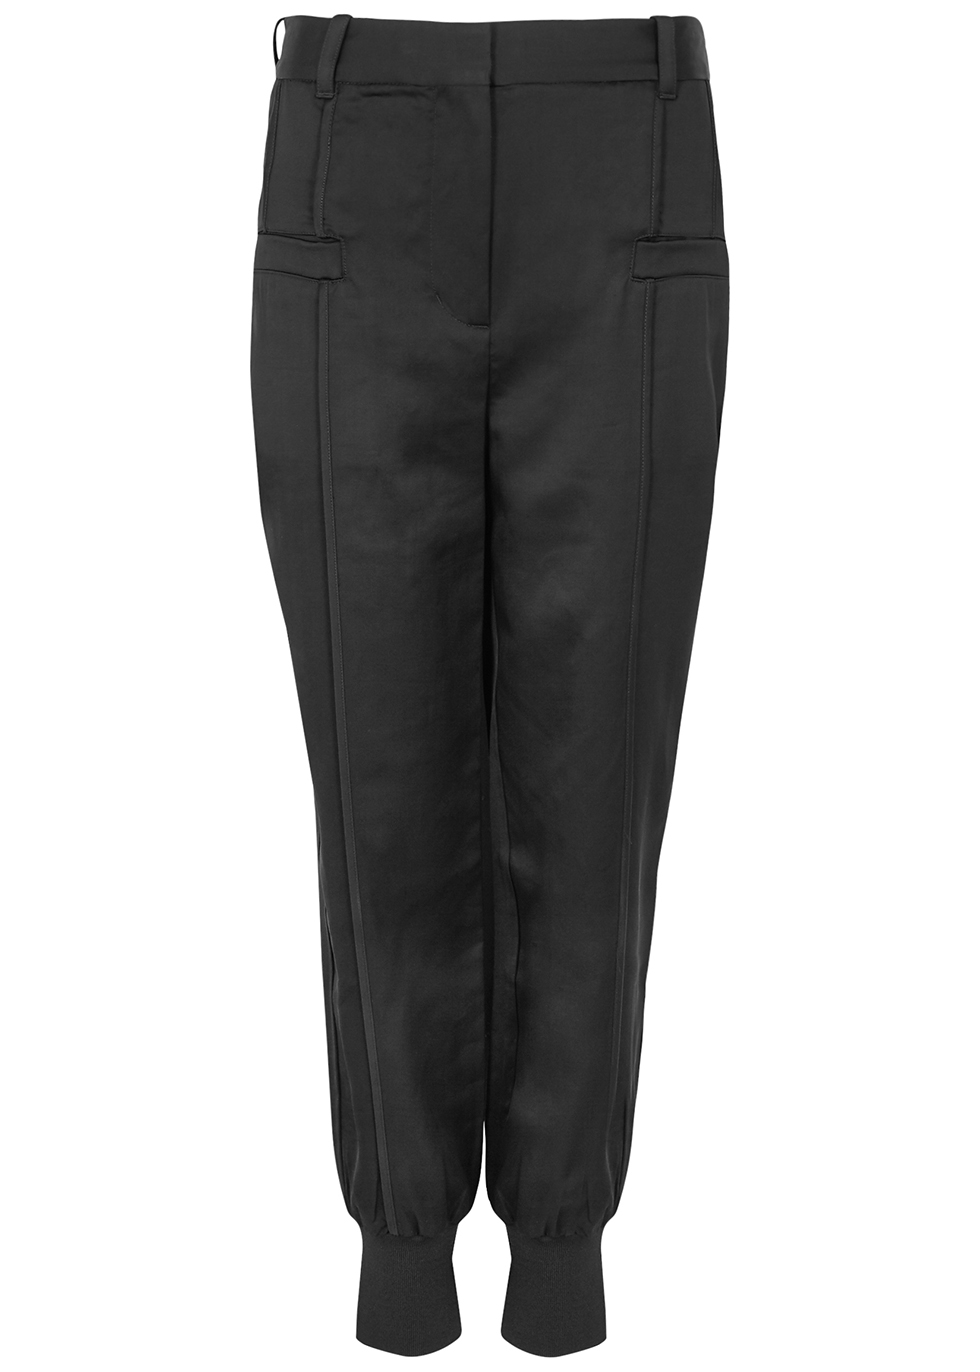 Black tapered satin trousers